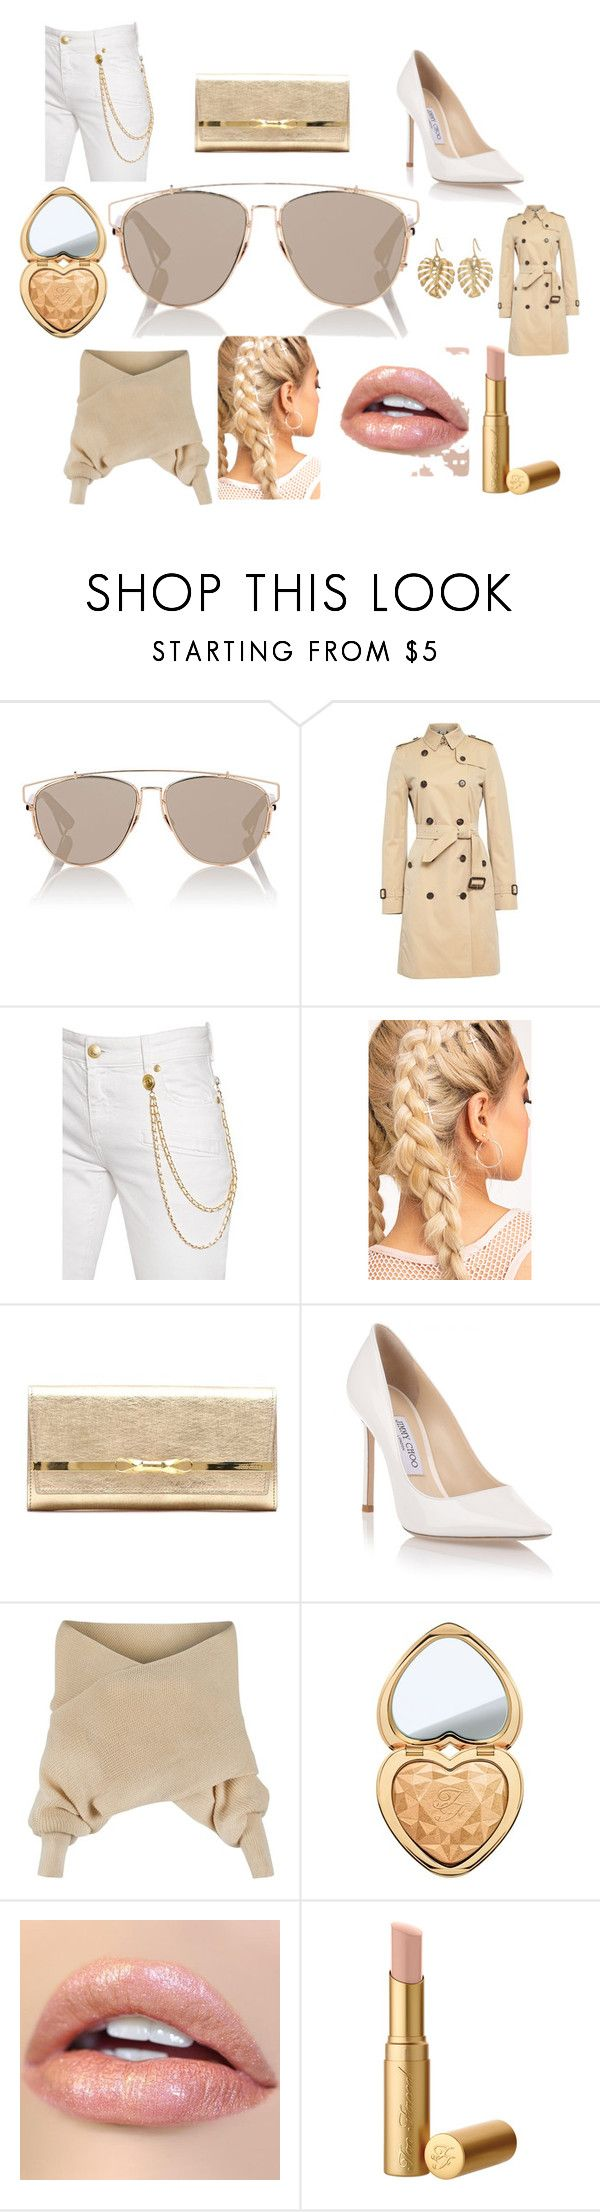 """HEAD OF HOLLYWOOD"" by marguerite-dillworth on Polyvore featuring Christian Dior, Burberry, Pierre Balmain, Jimmy Choo, WithChic, Too Faced Cosmetics and The Sak"